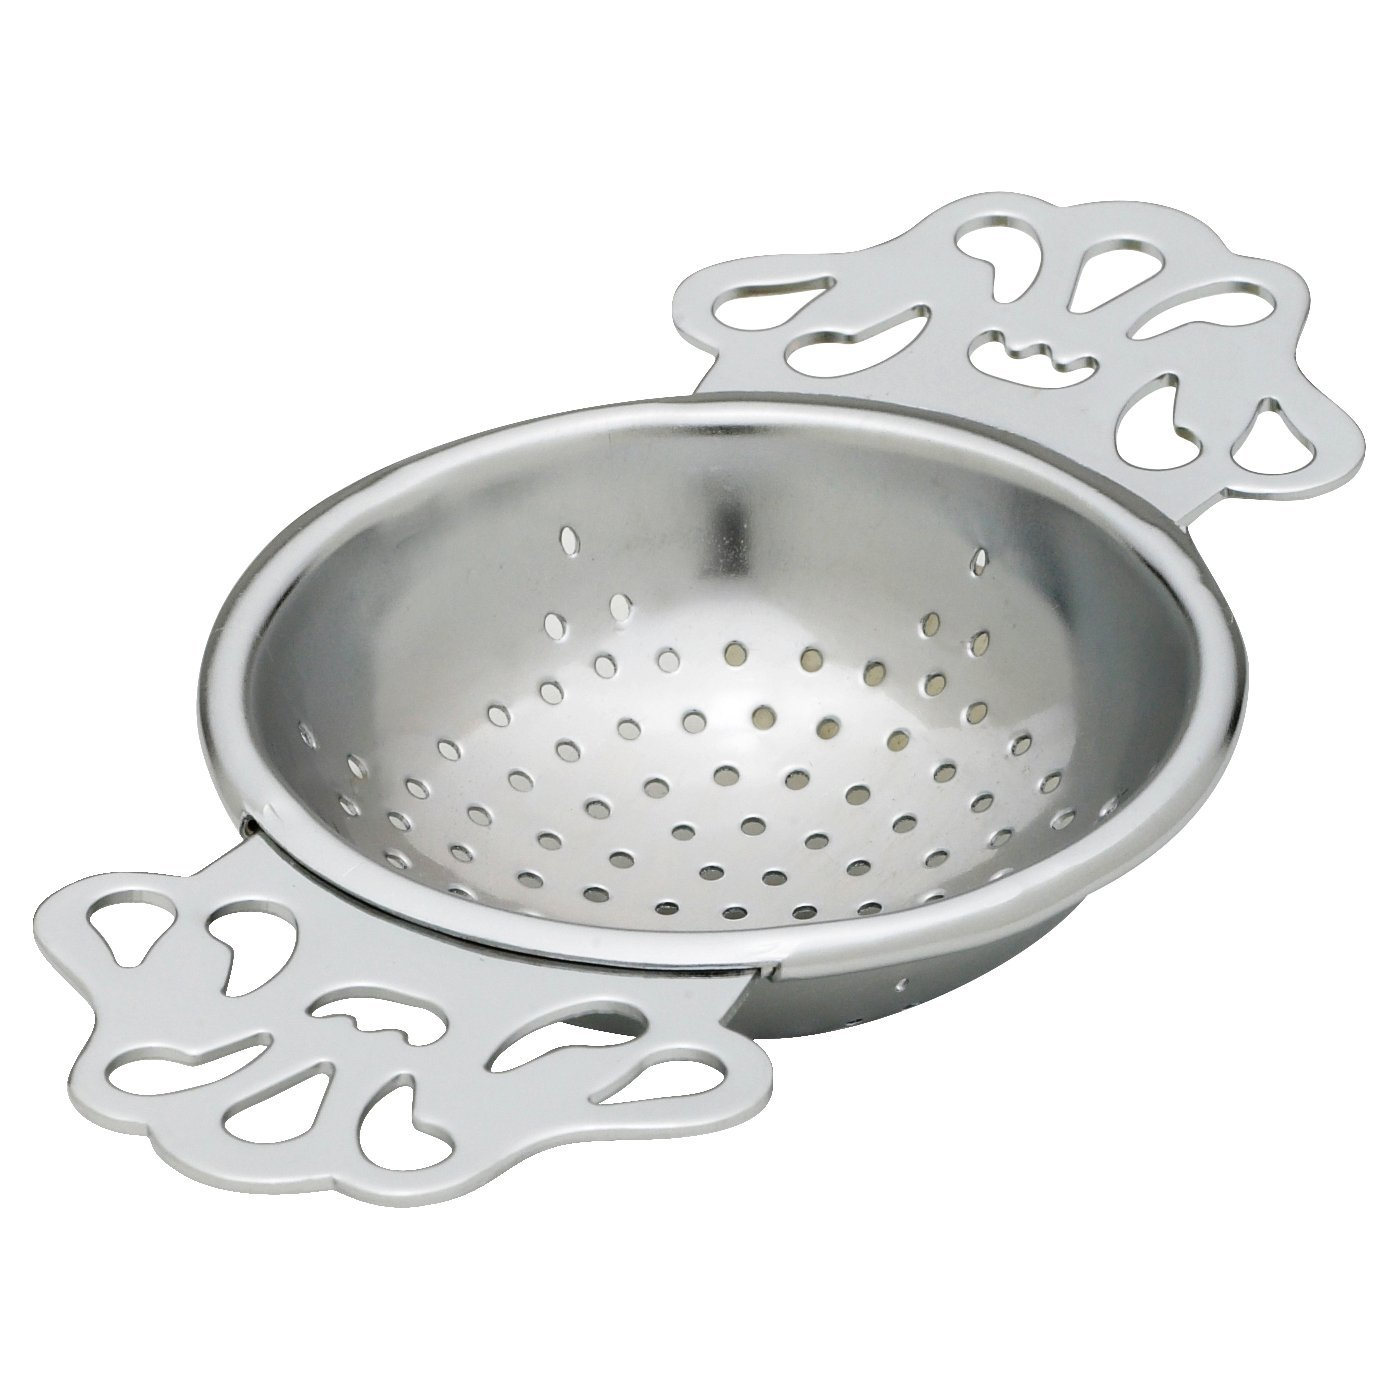 English Tea Strainer, Chrome (1, A)